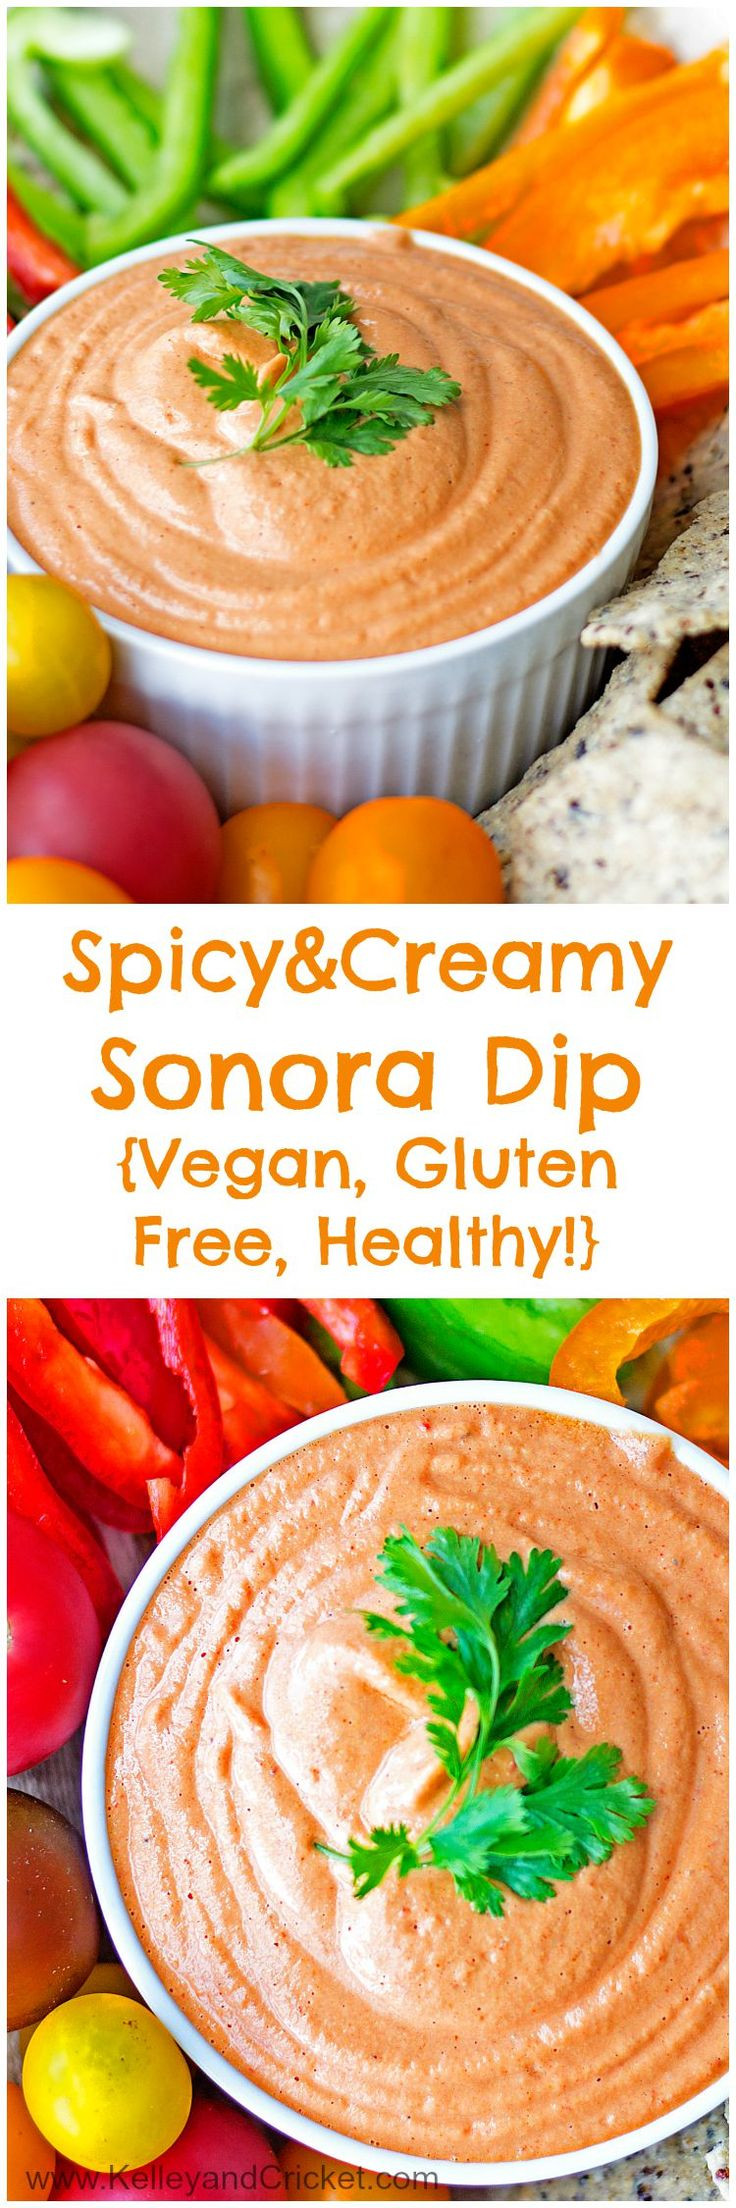 Healthy Vegan Gluten Free Recipes  Spicy & Creamy Sonora Dip Gluten Free Vegan Healthy